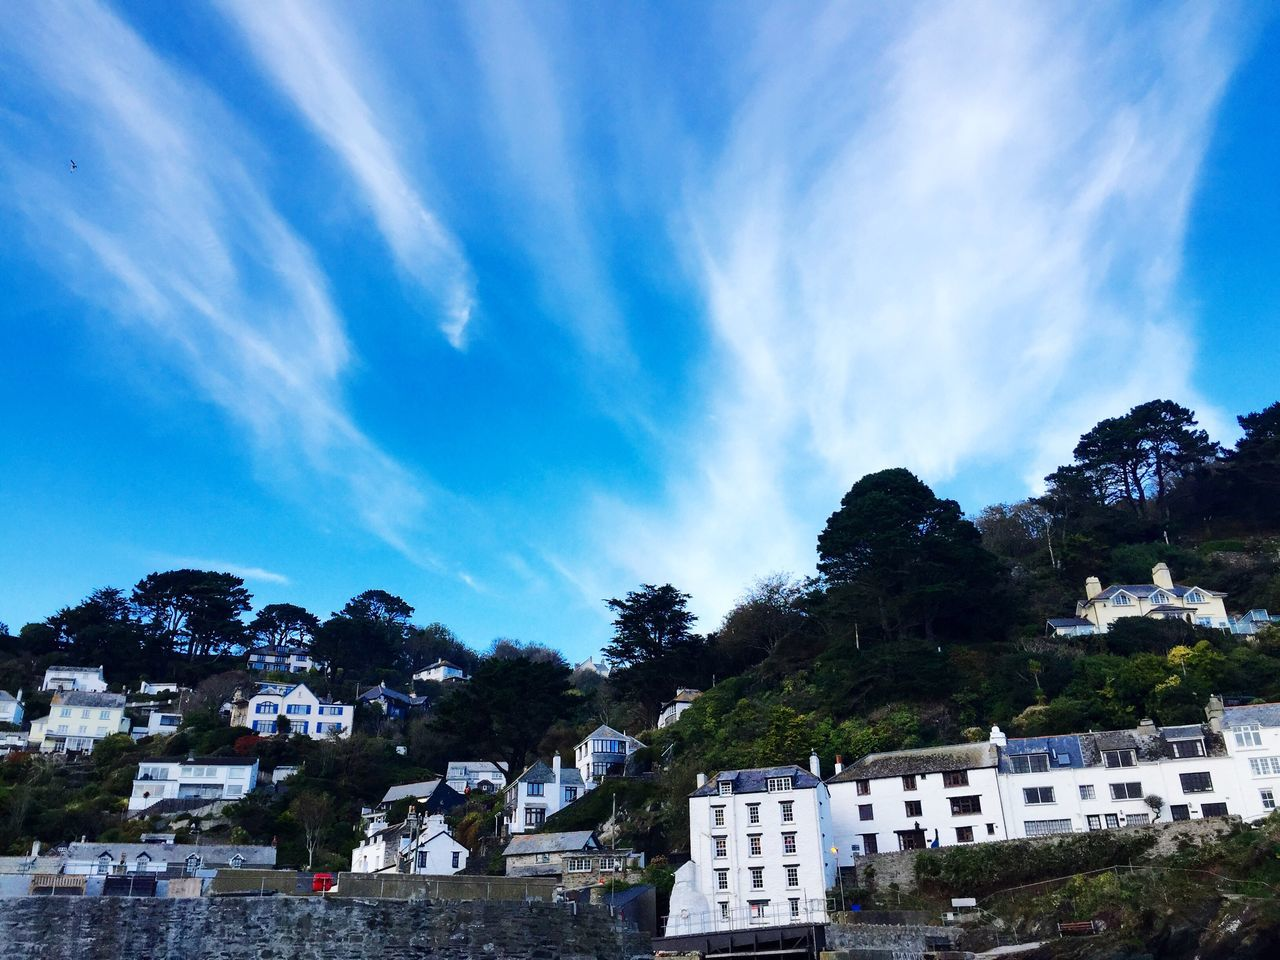 Cornish Landscape Cornish Coast Cornish Village Cornwall Uk Blue Sky Dramatic Sky White Houses Hillside Hillside View